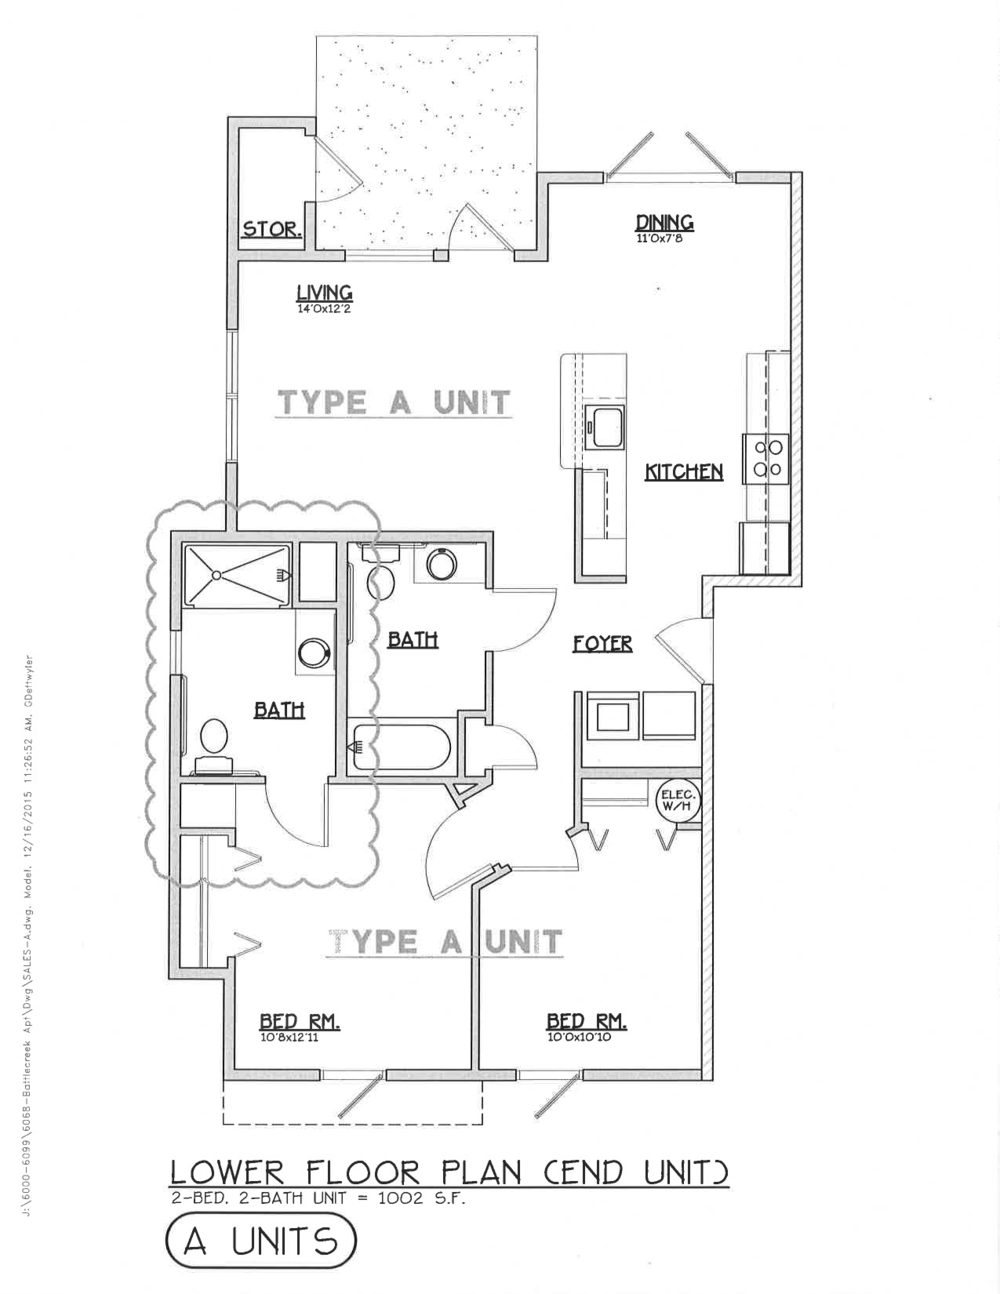 Type A Floor Plans.png